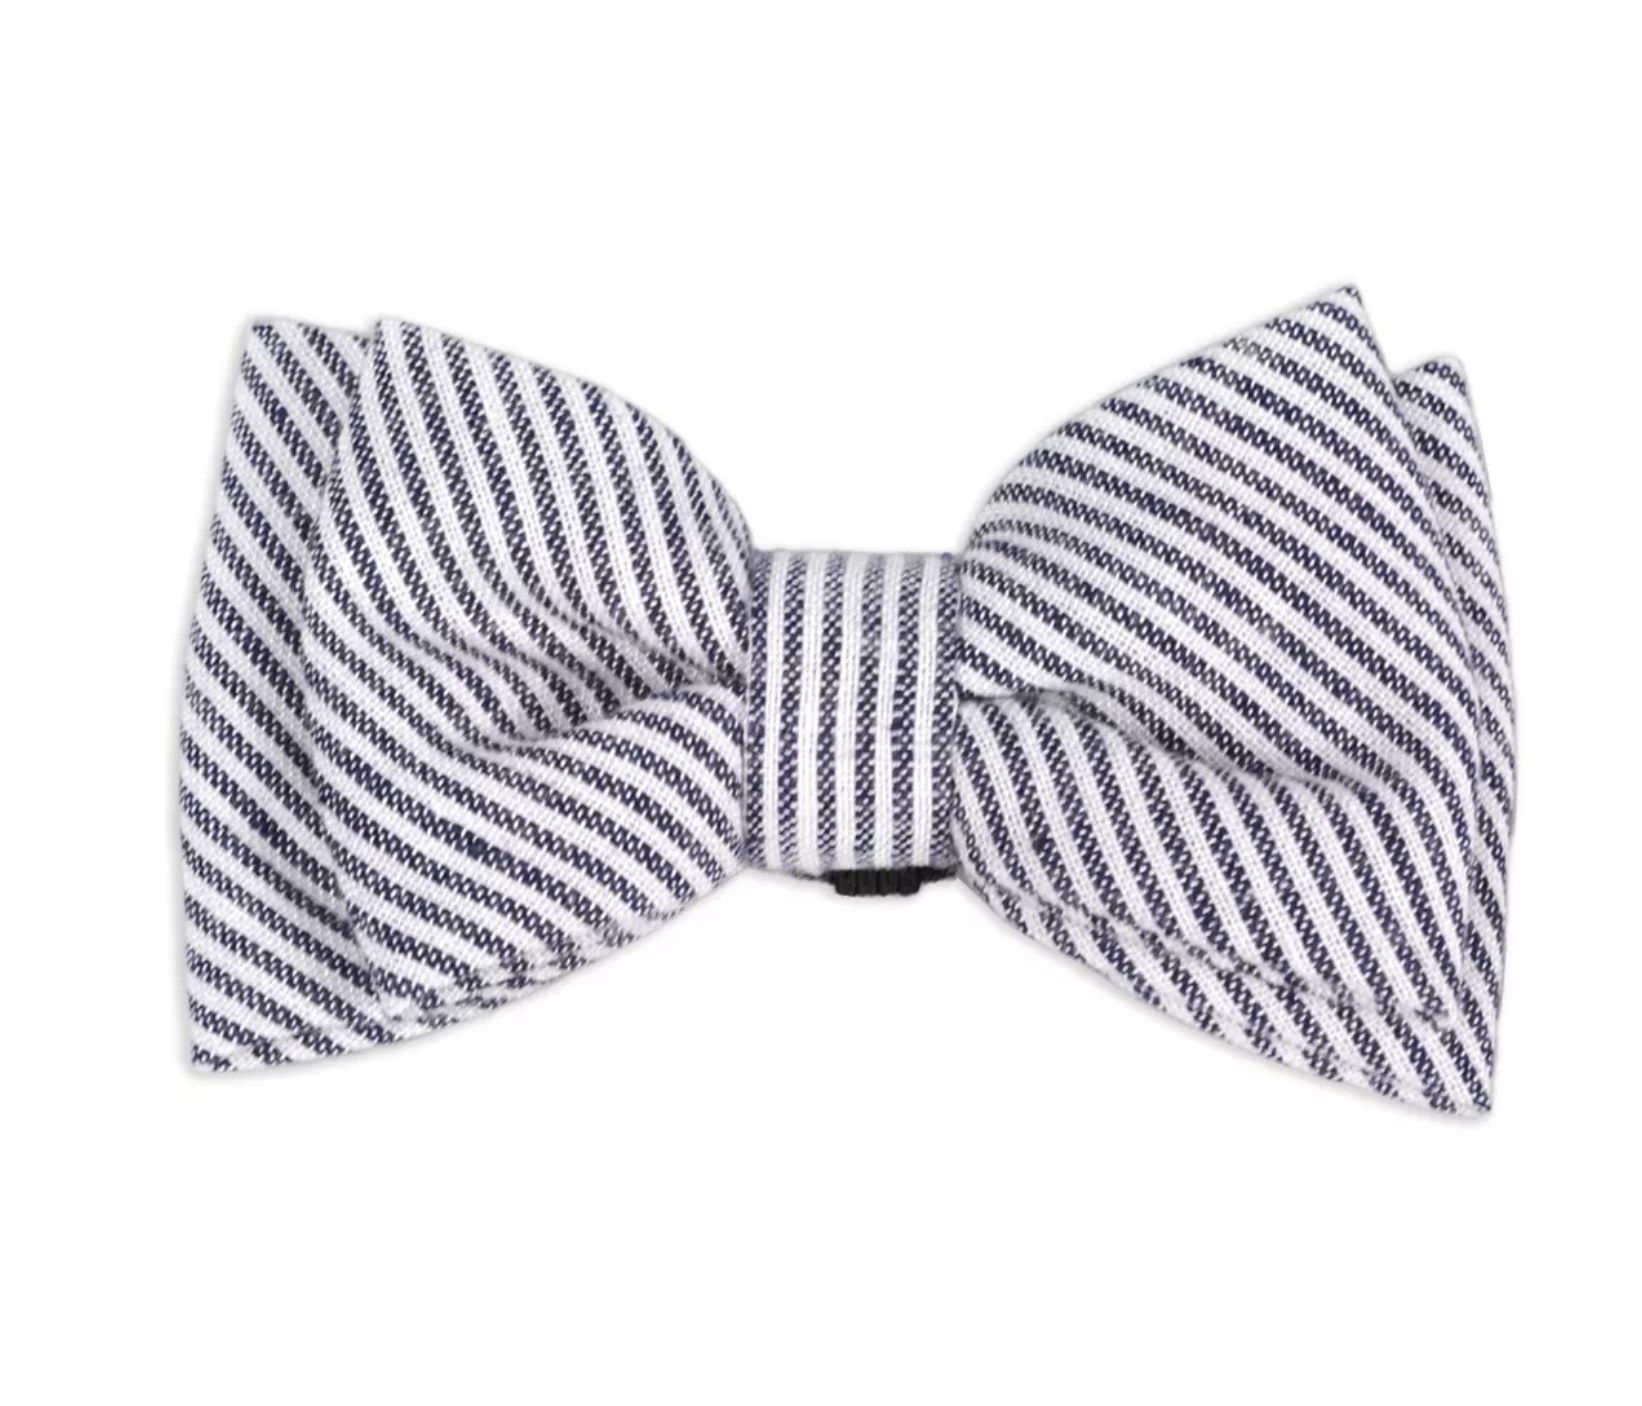 A white and black striped bow